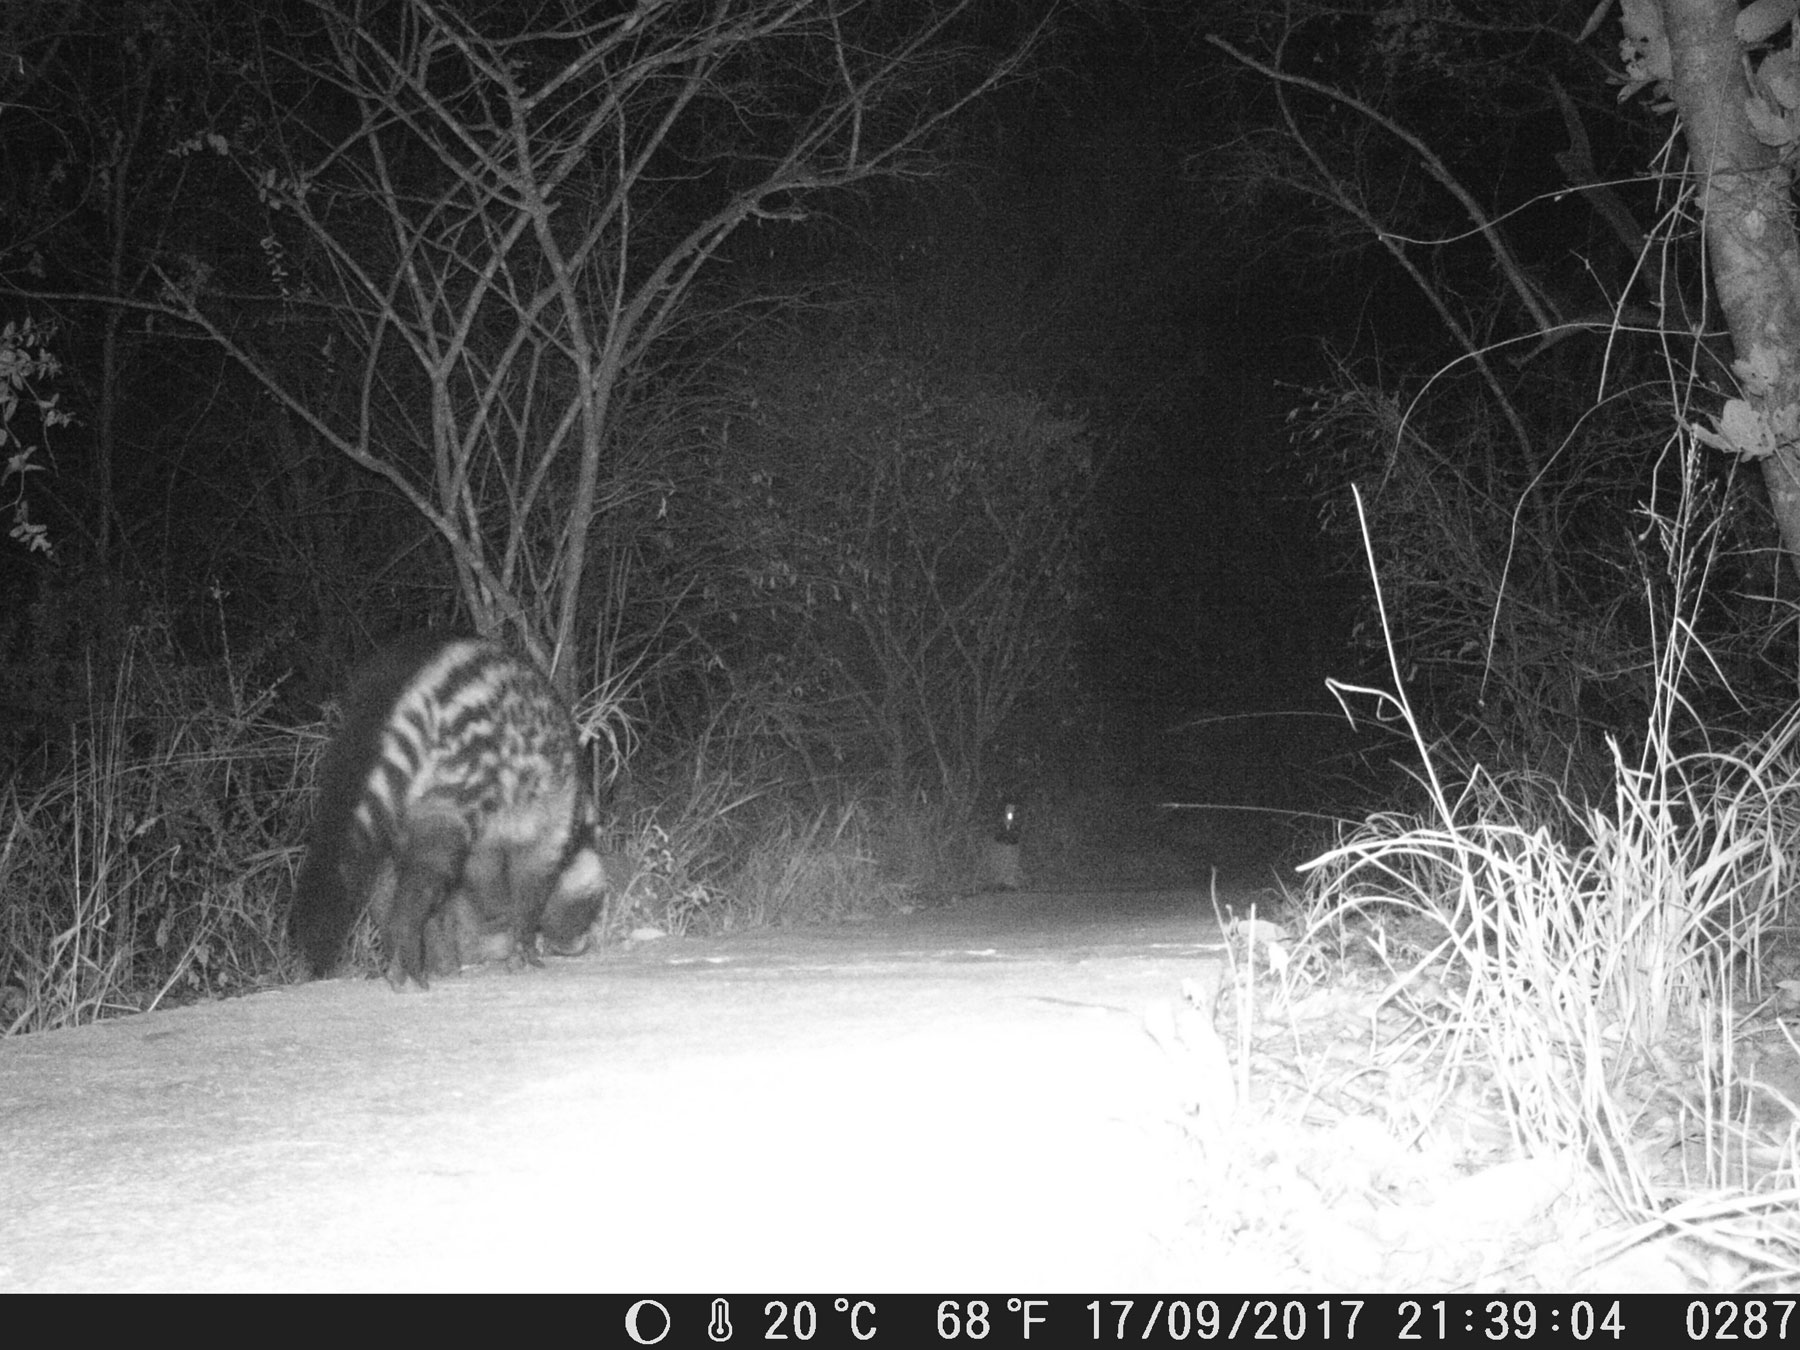 Civet on Camera Trap